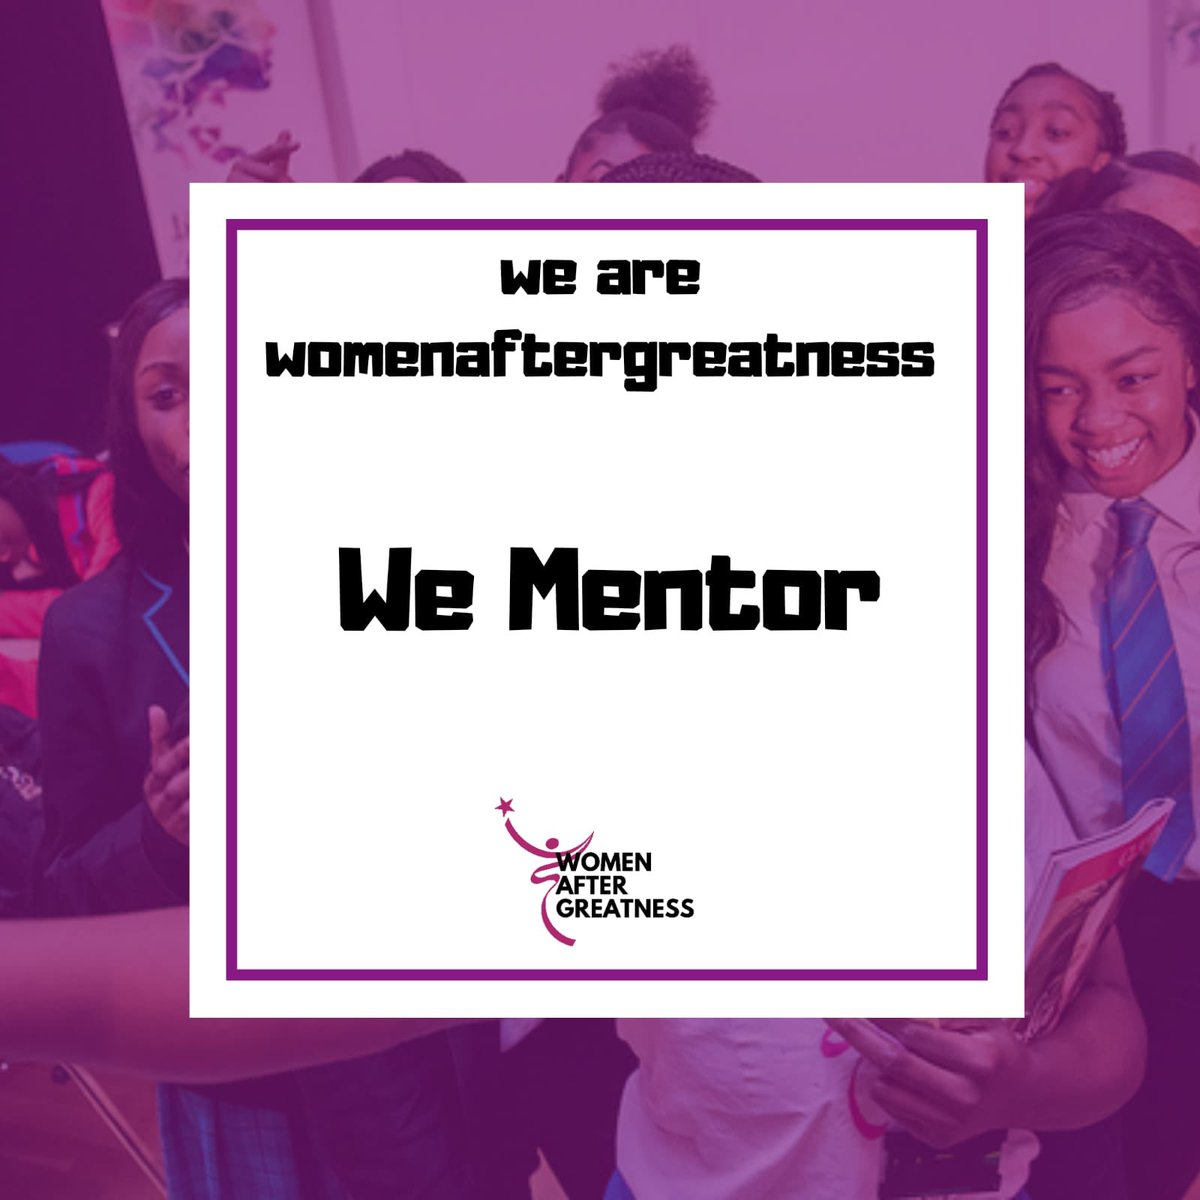 Who are your mentors ? Who inspires you ?  Share this thread, and post a picture of yourself and a picture of your mentor. With one reason why they inspire you #womenaftergreatness #shesessions #shementors #shebuilds #womenempowerment #powerofmentoship #femalebusinessowners pic.twitter.com/raVdpg9oQU